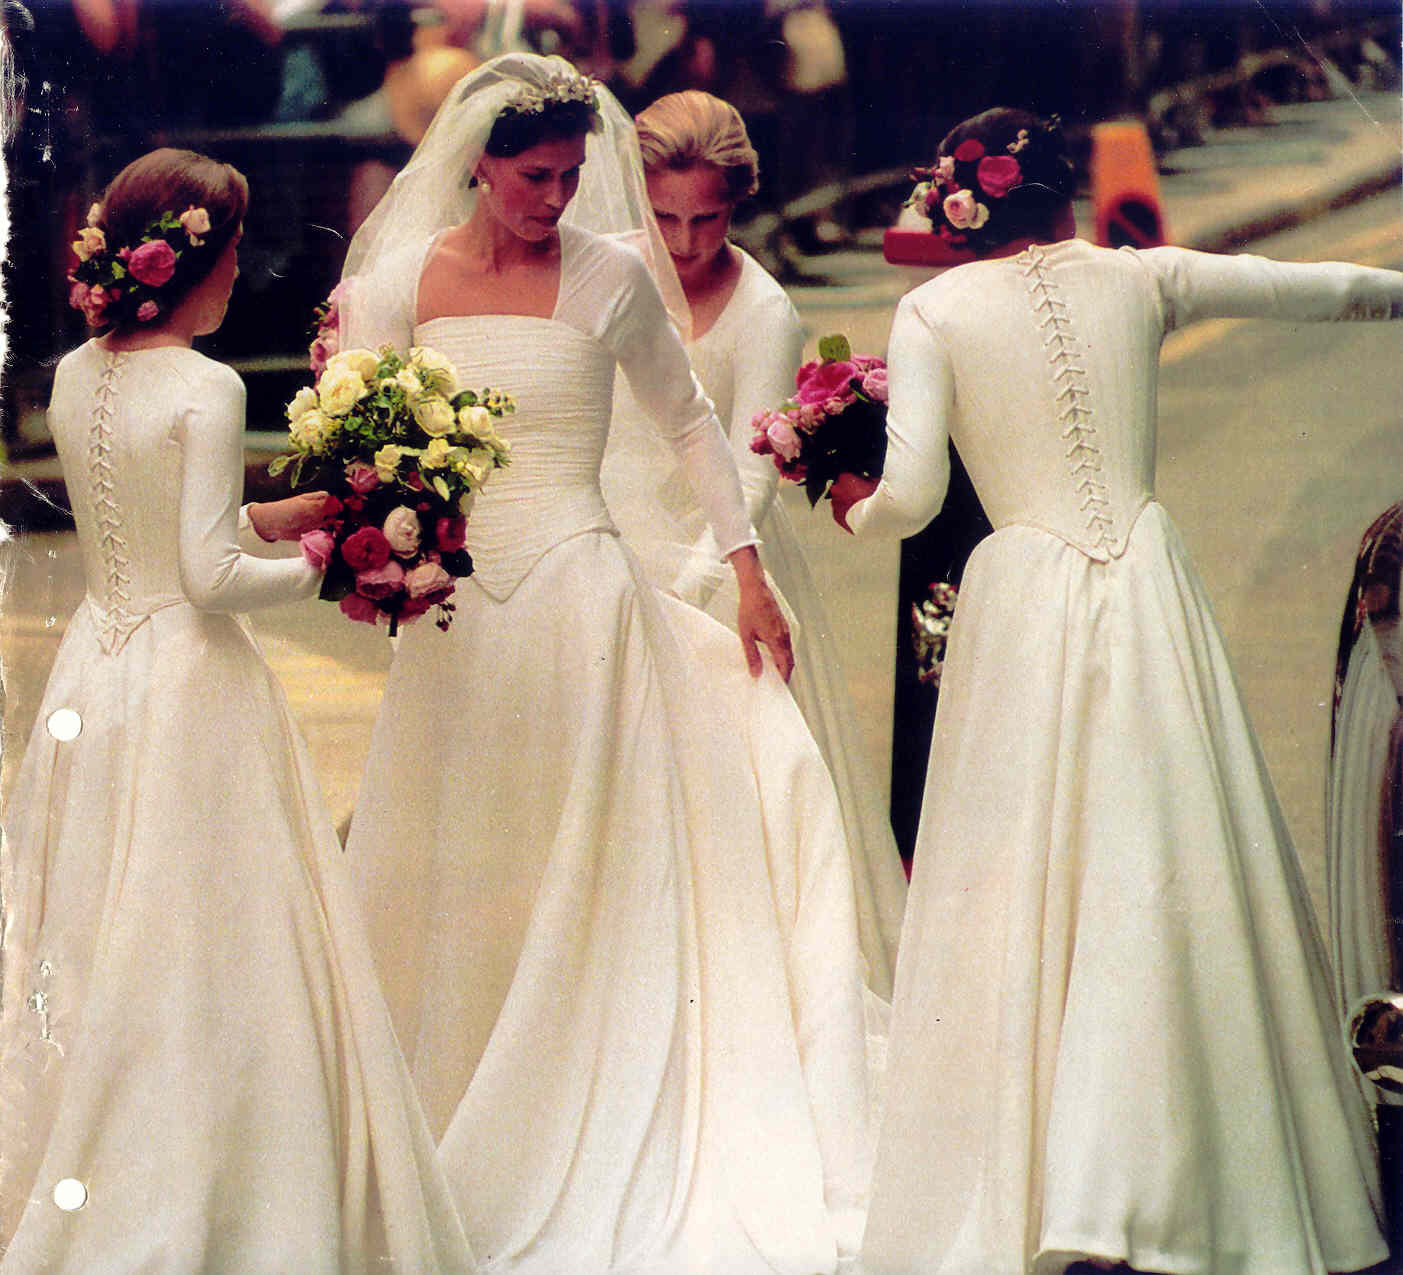 Nicoles world royal wedding dresses in 1994 lady sarah made a very modern bride in jasper conran ombrellifo Gallery